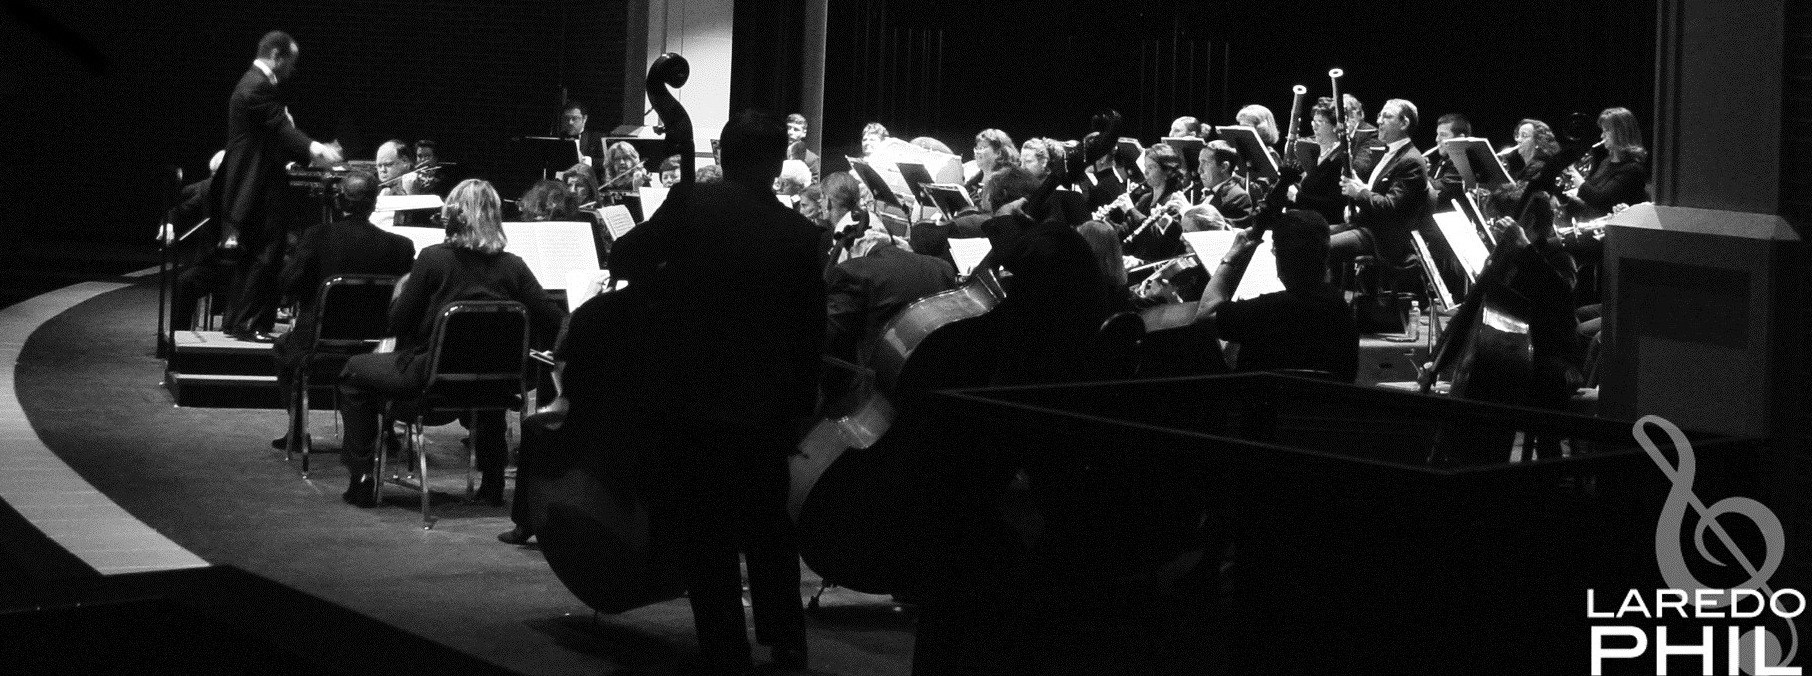 Laredo Philharmonic